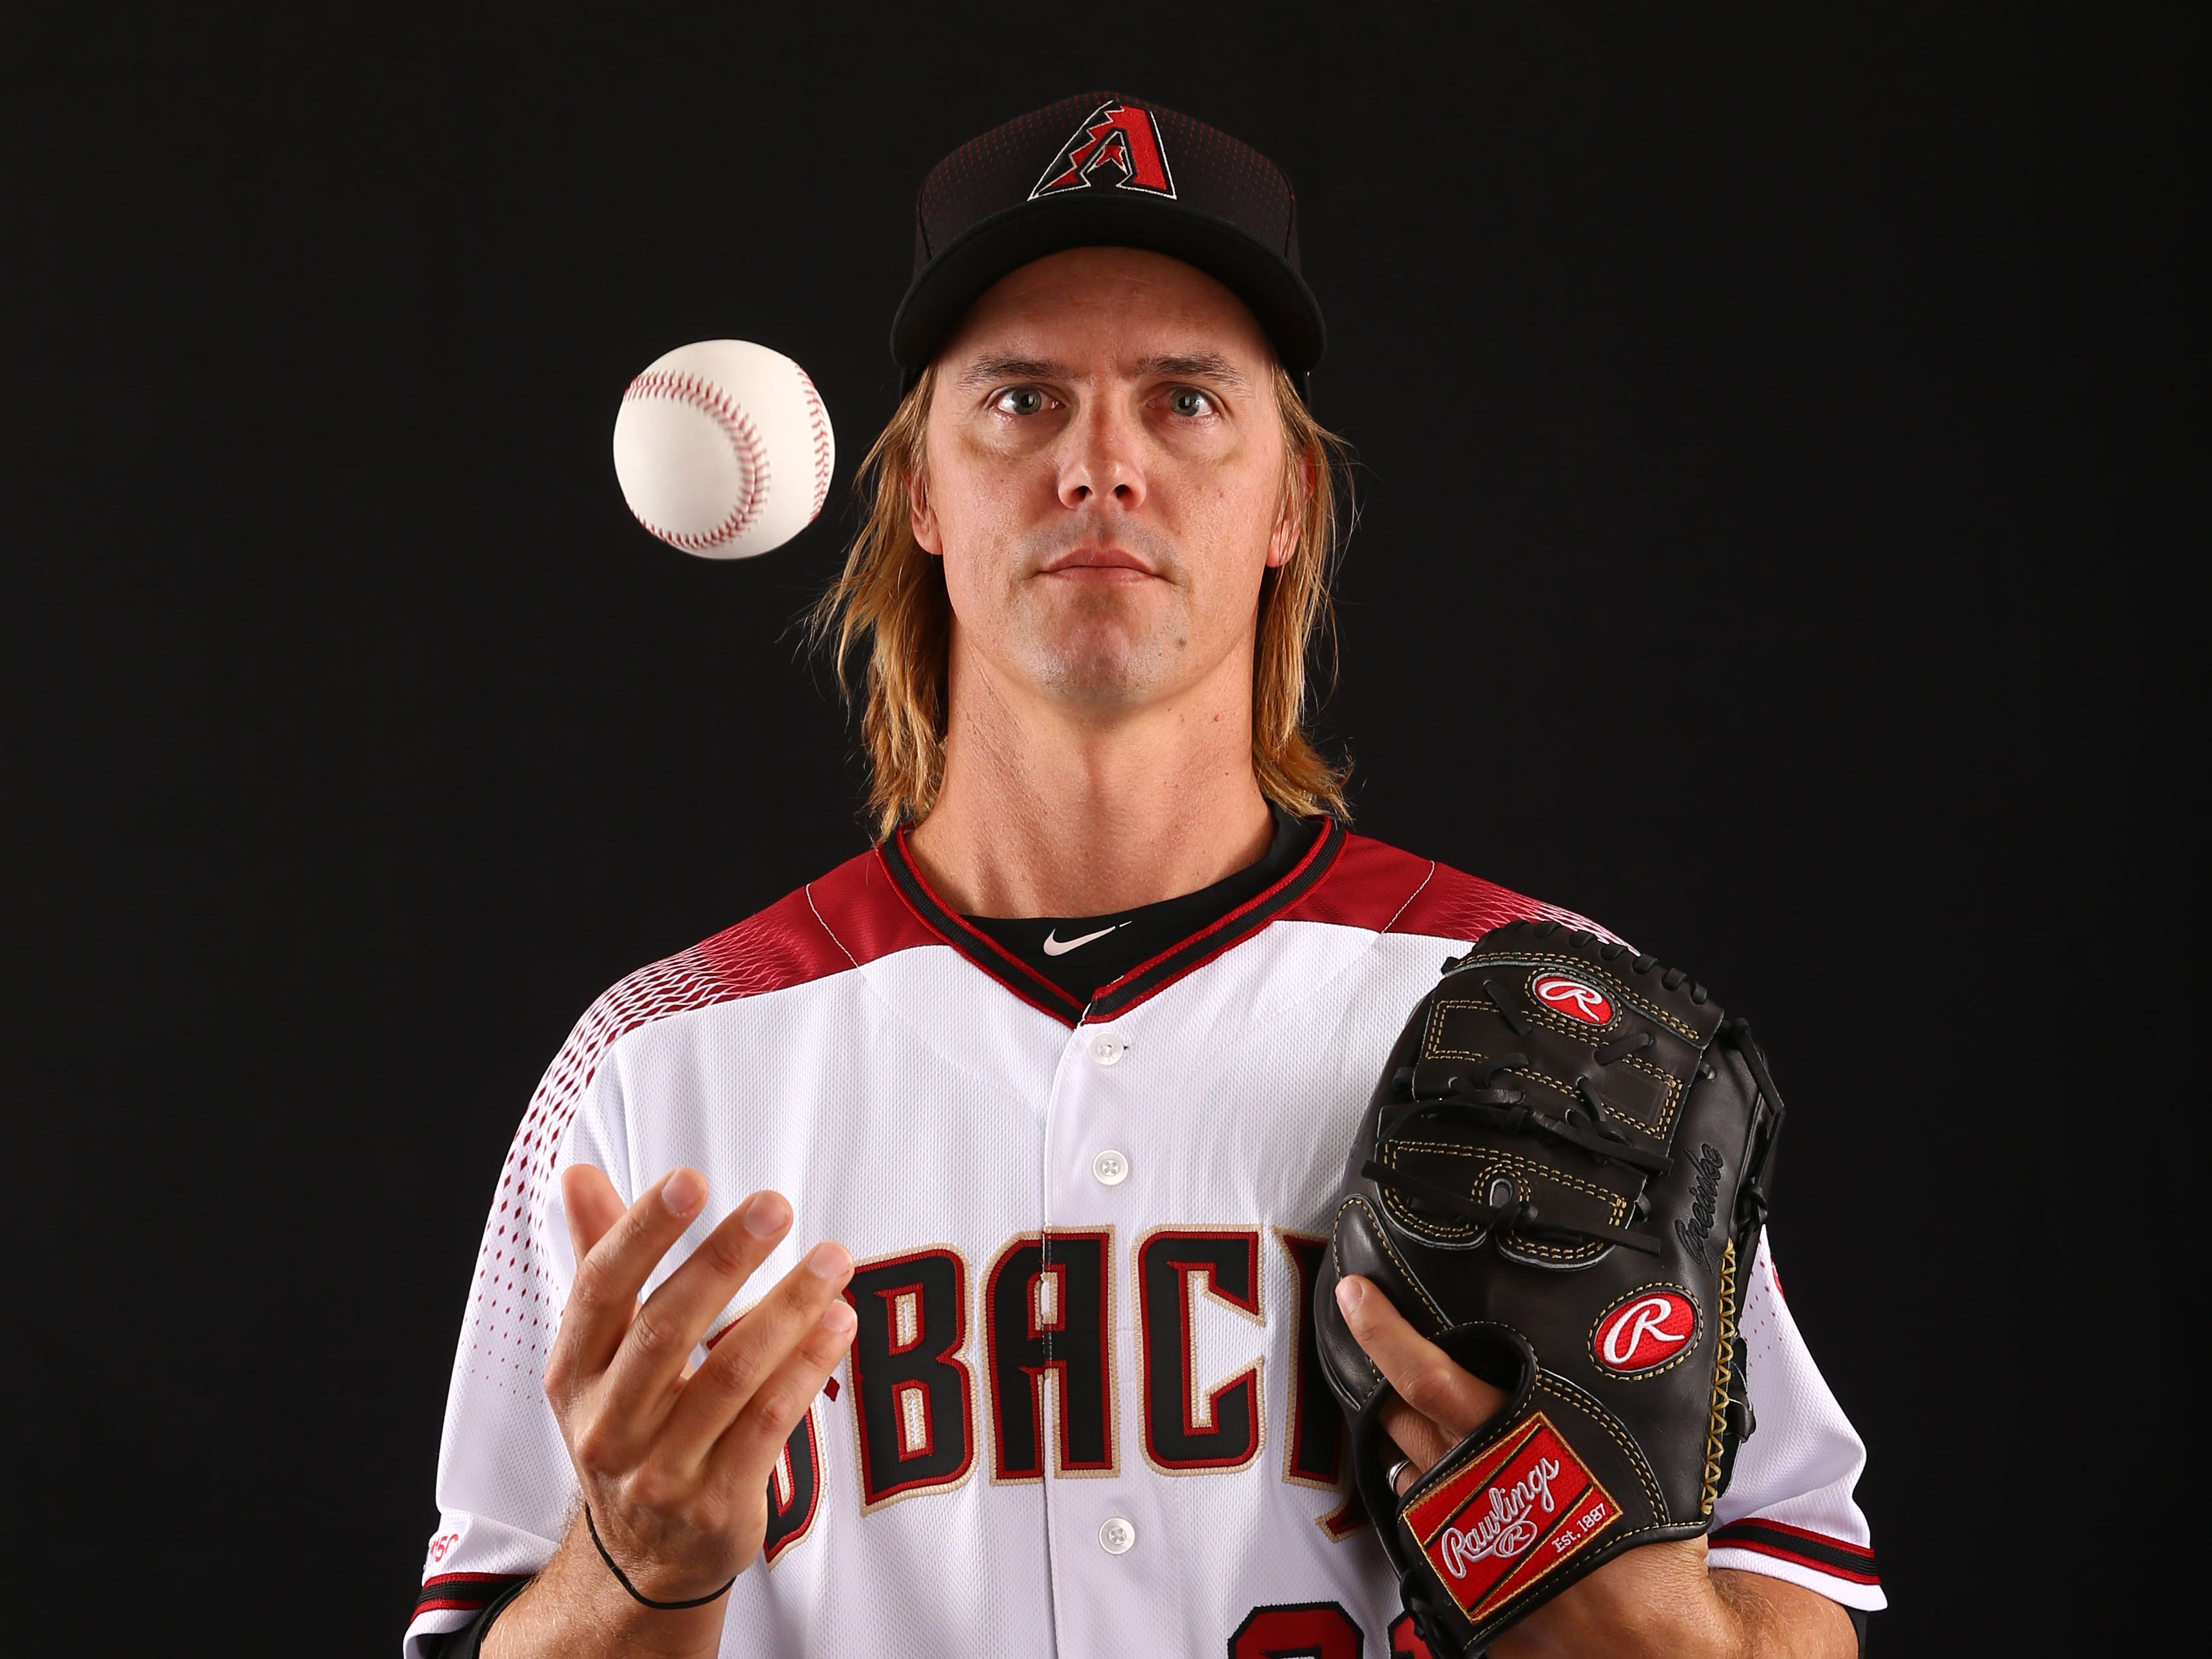 Zack Greinke of the Arizona Diamondbacks poses for a photo during the annual Spring Training Photo Day on Feb. 20 at Salt River Fields in Scottsdale, Ariz.